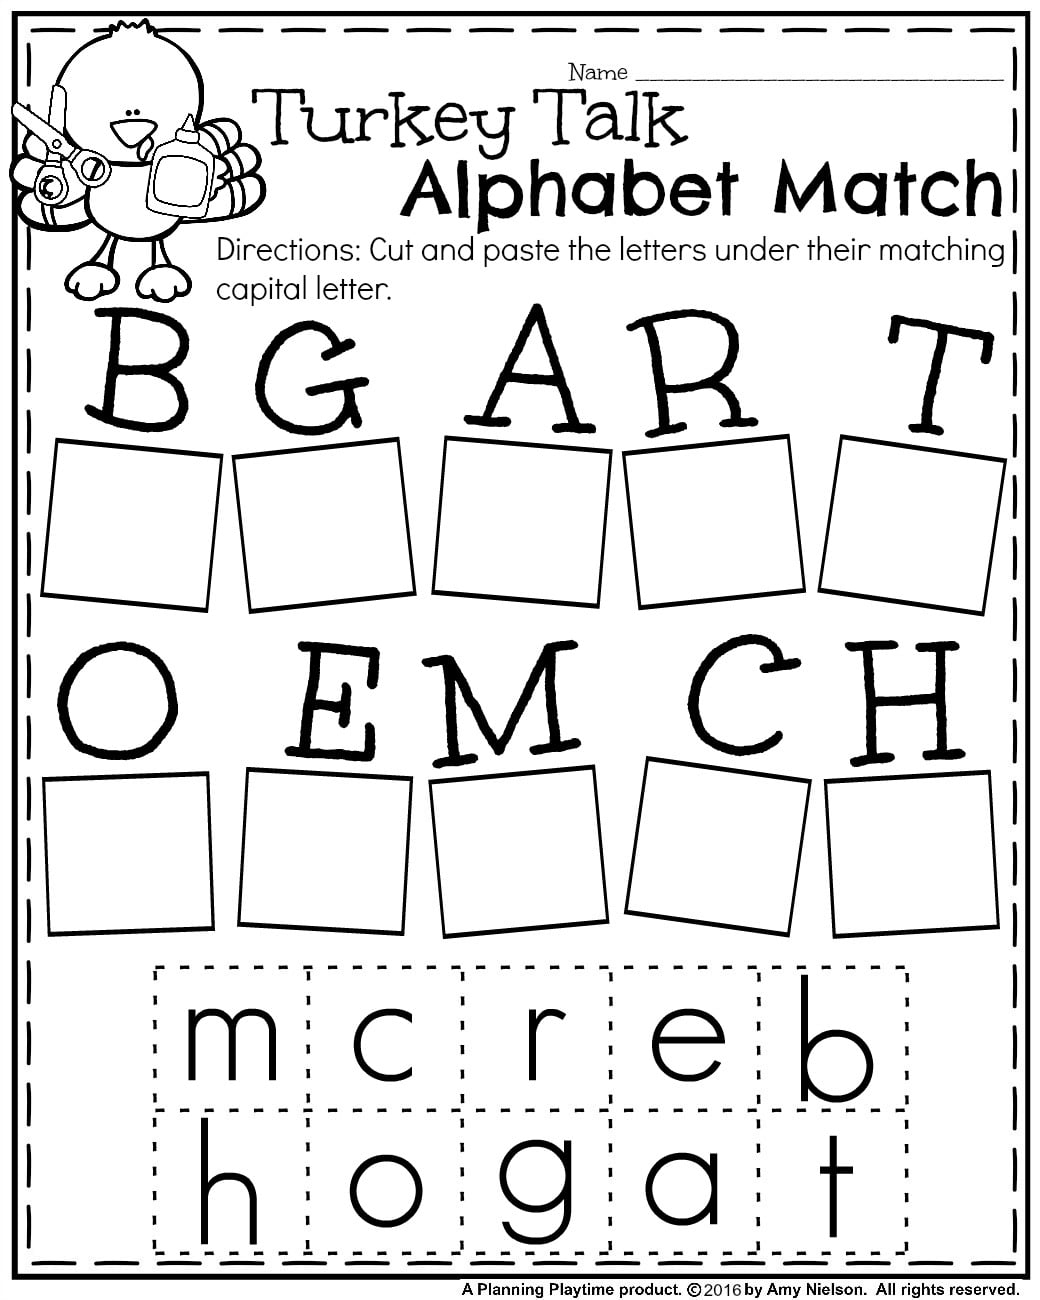 Worksheets Cut And Paste Worksheets For Kindergarten fall kindergarten worksheets for november planning playtime free worksheet turkey alphabet match